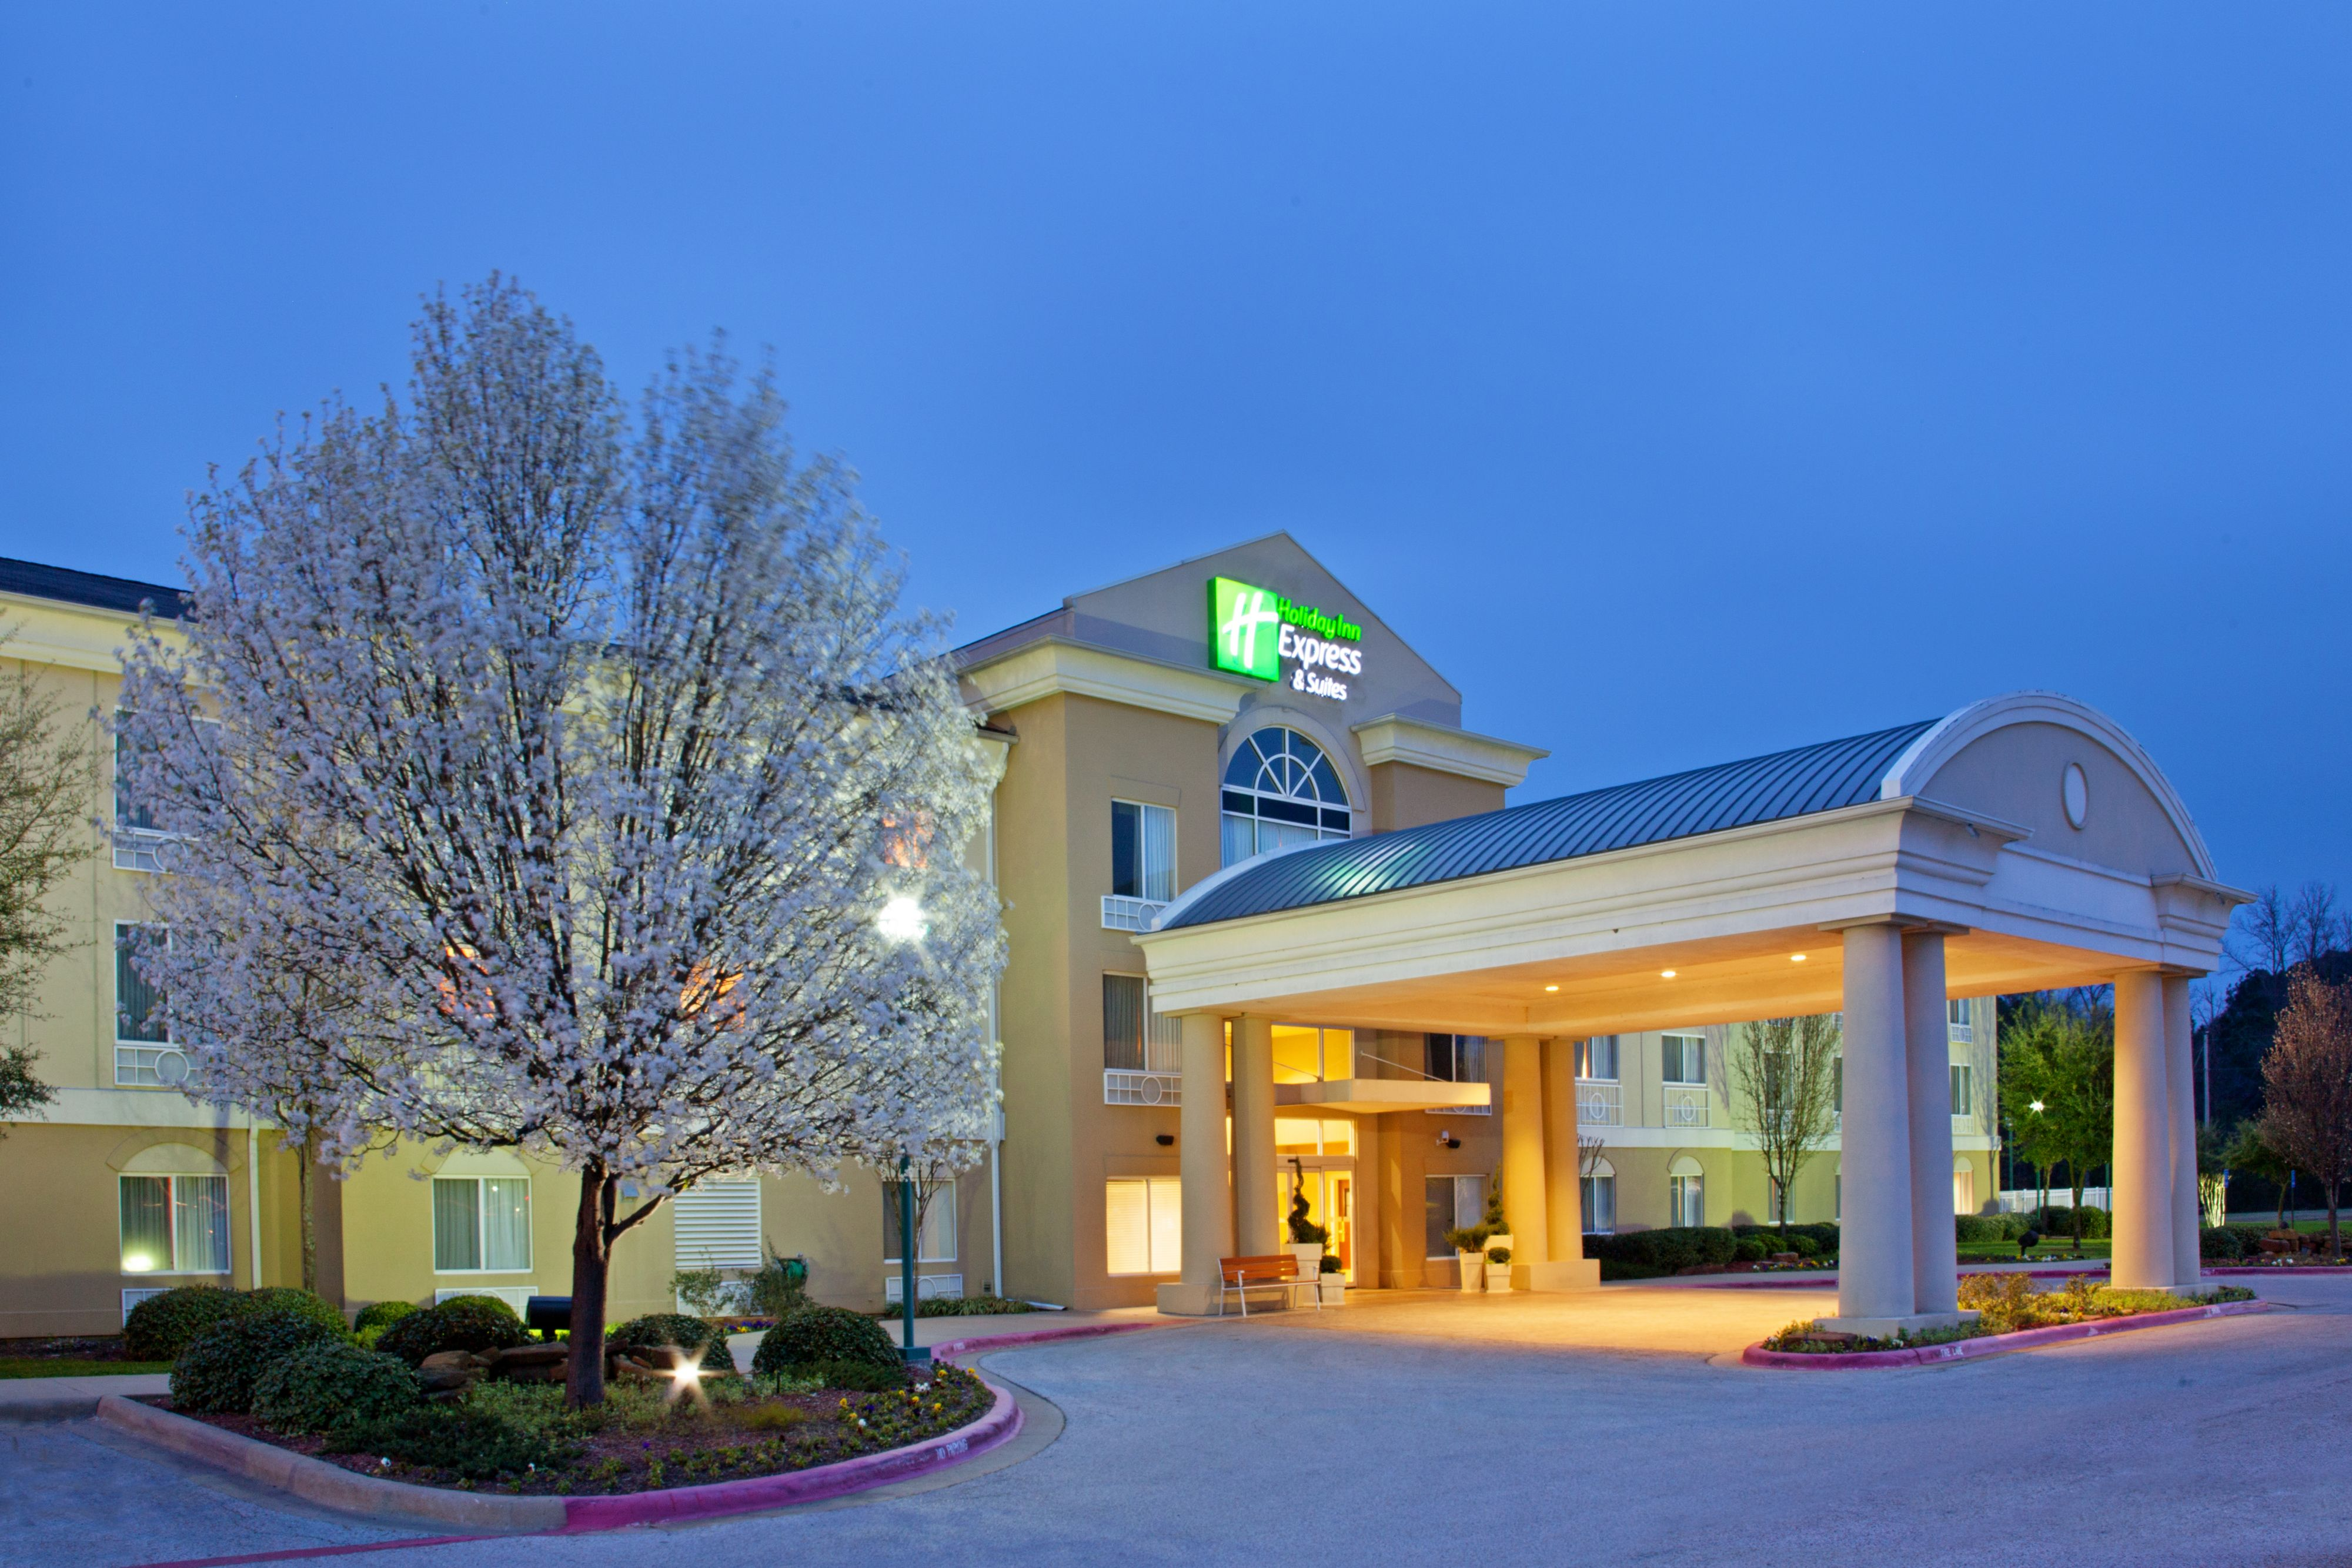 Holiday Inn Express & Suites Long Island-East End image 5